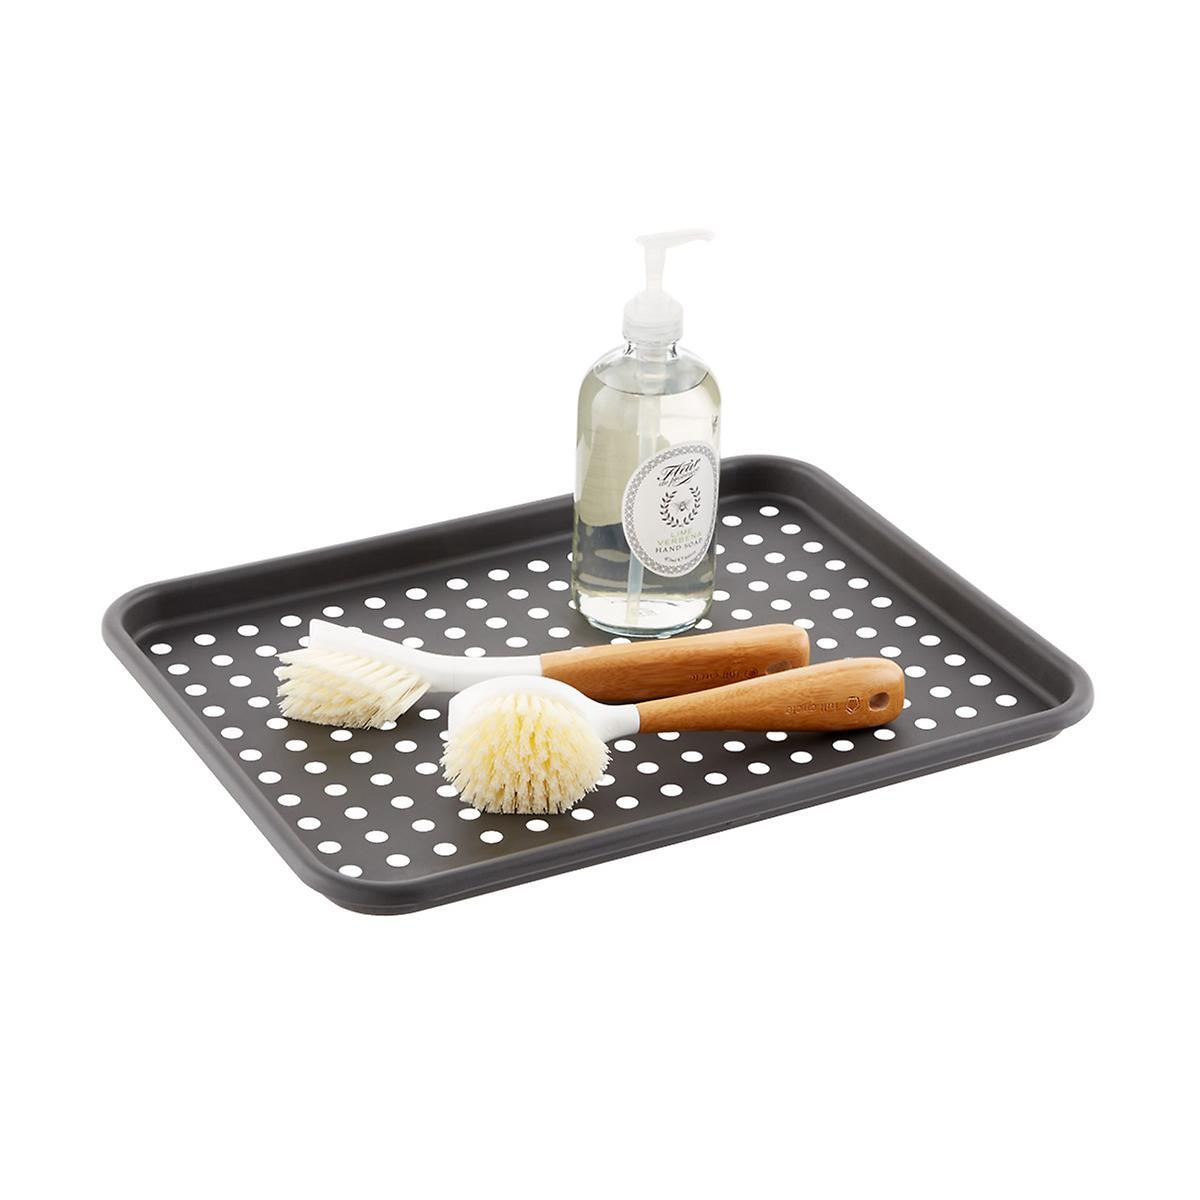 madesmart Under Sink Drip Tray